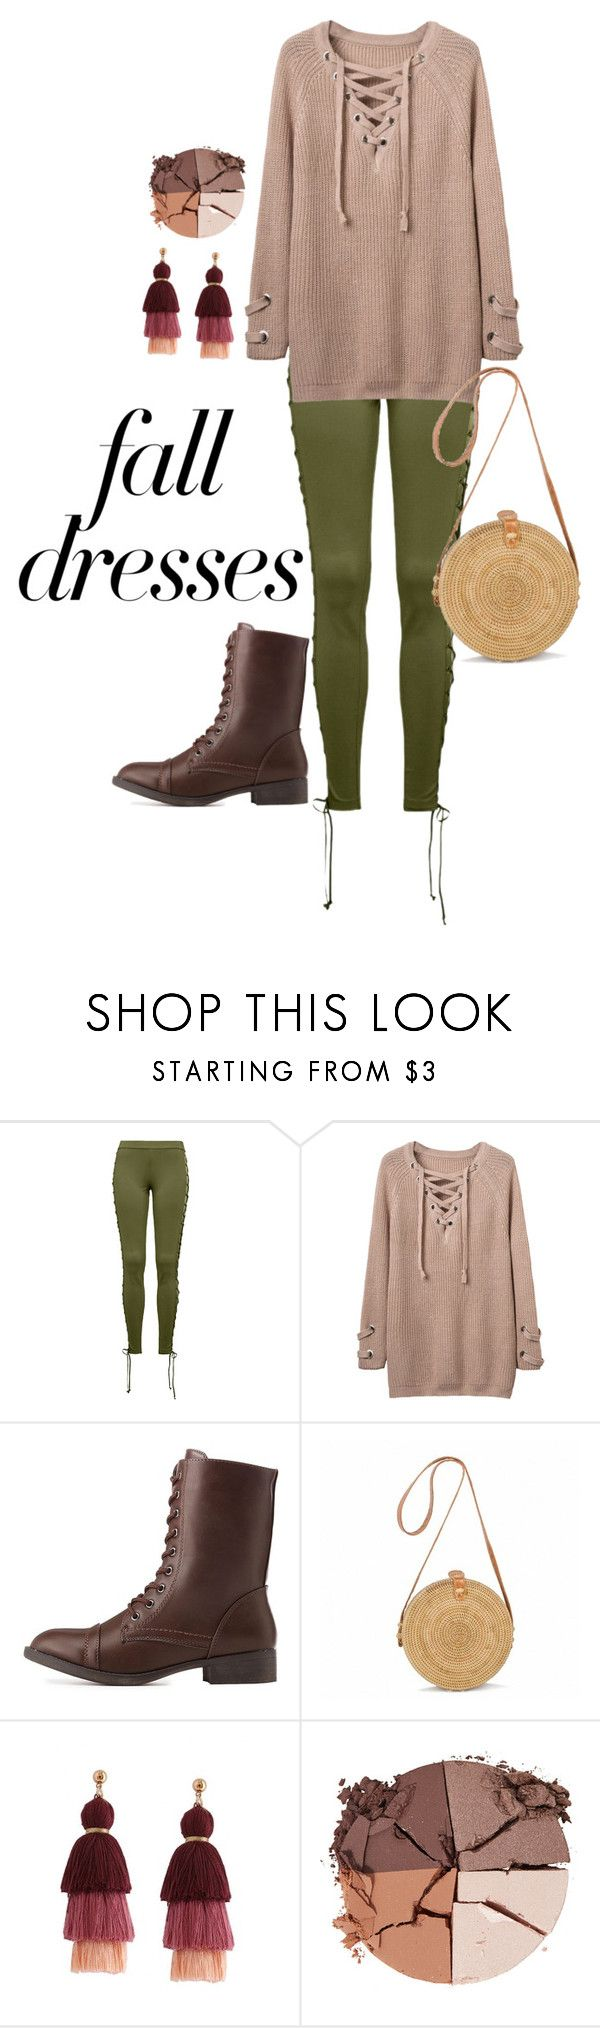 """""""Bez tytułu #77"""" by la-donna-morta ❤ liked on Polyvore featuring Puma, WithChic, Charlotte Russe and lilah b."""